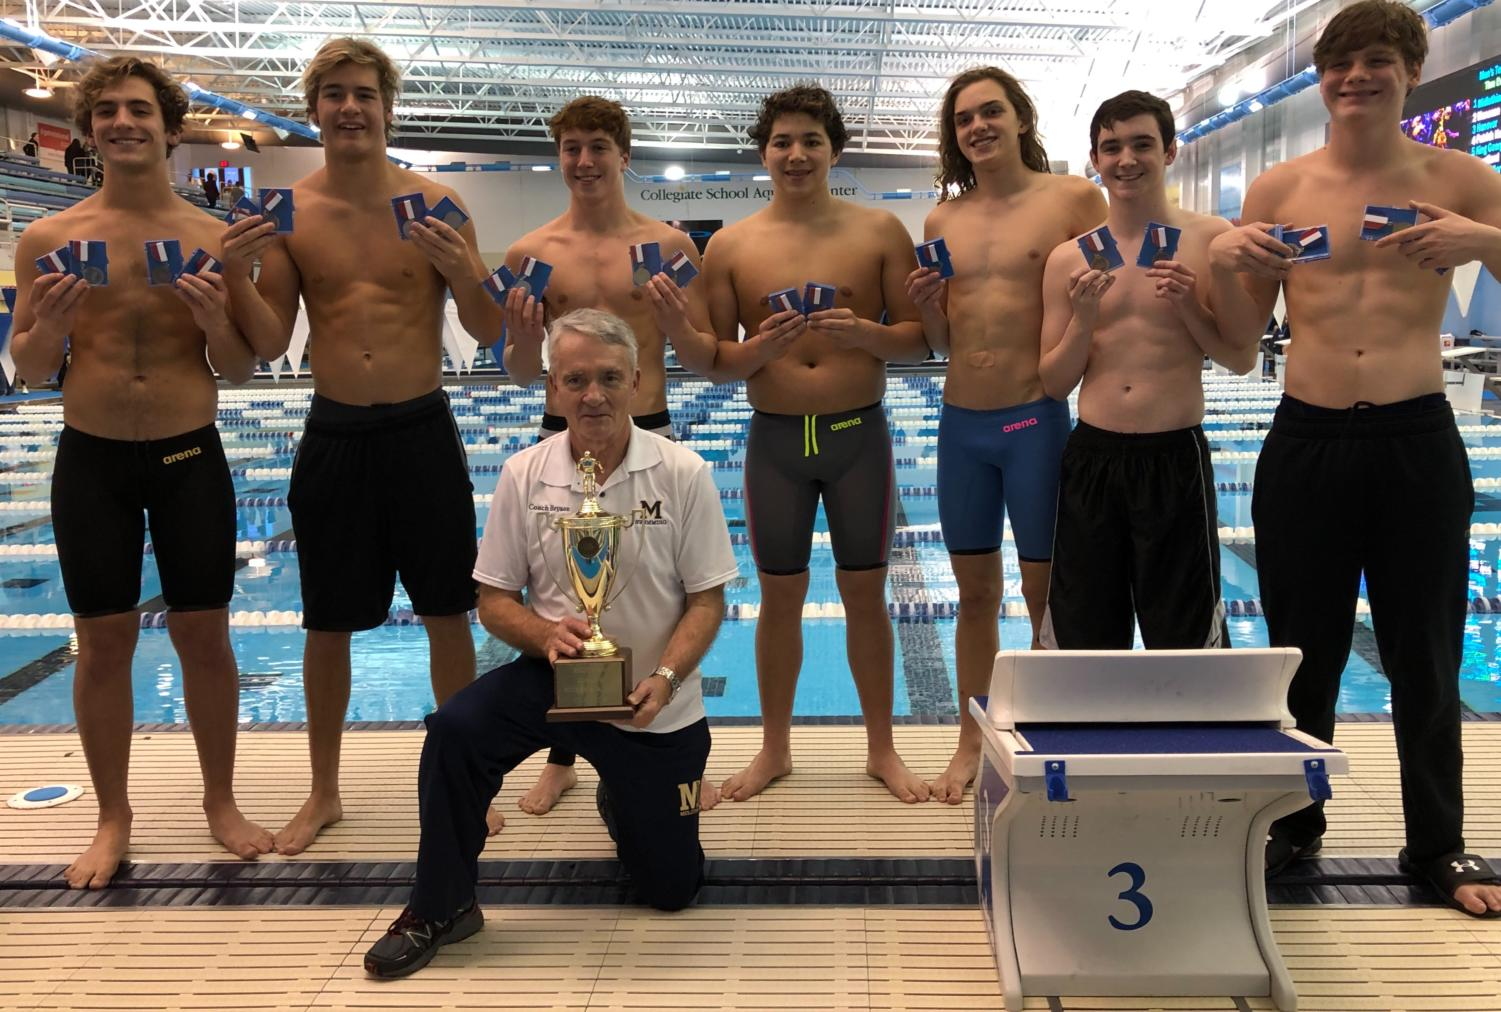 Star MIdlo swimmers show off their medals as they take on 2019 Regionals for the win.